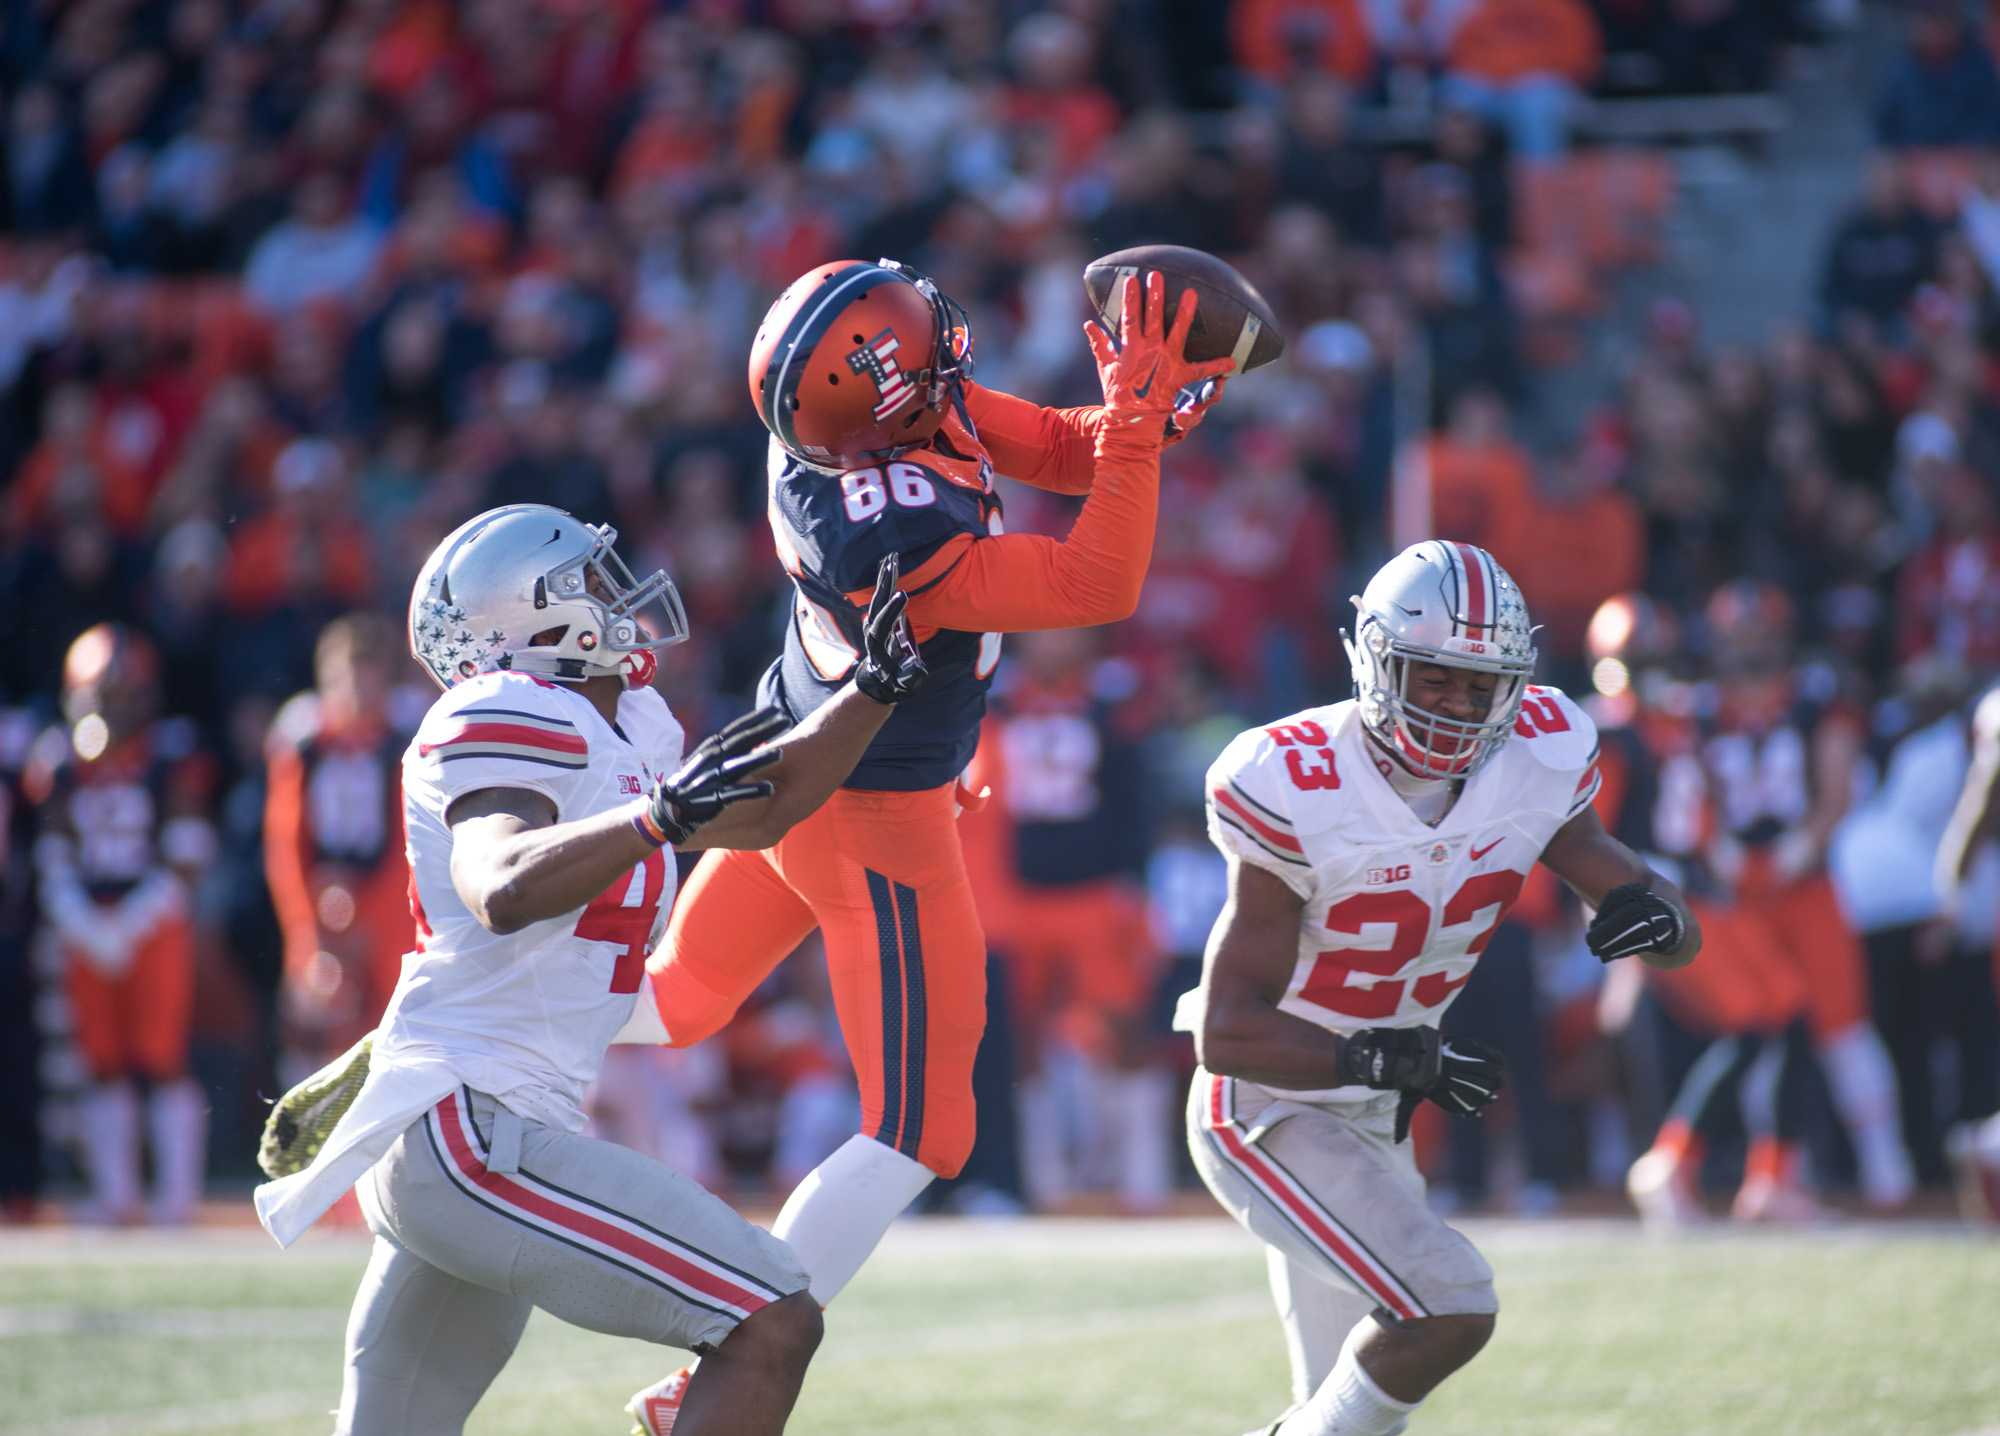 Illinois football will host seven home games in the fall